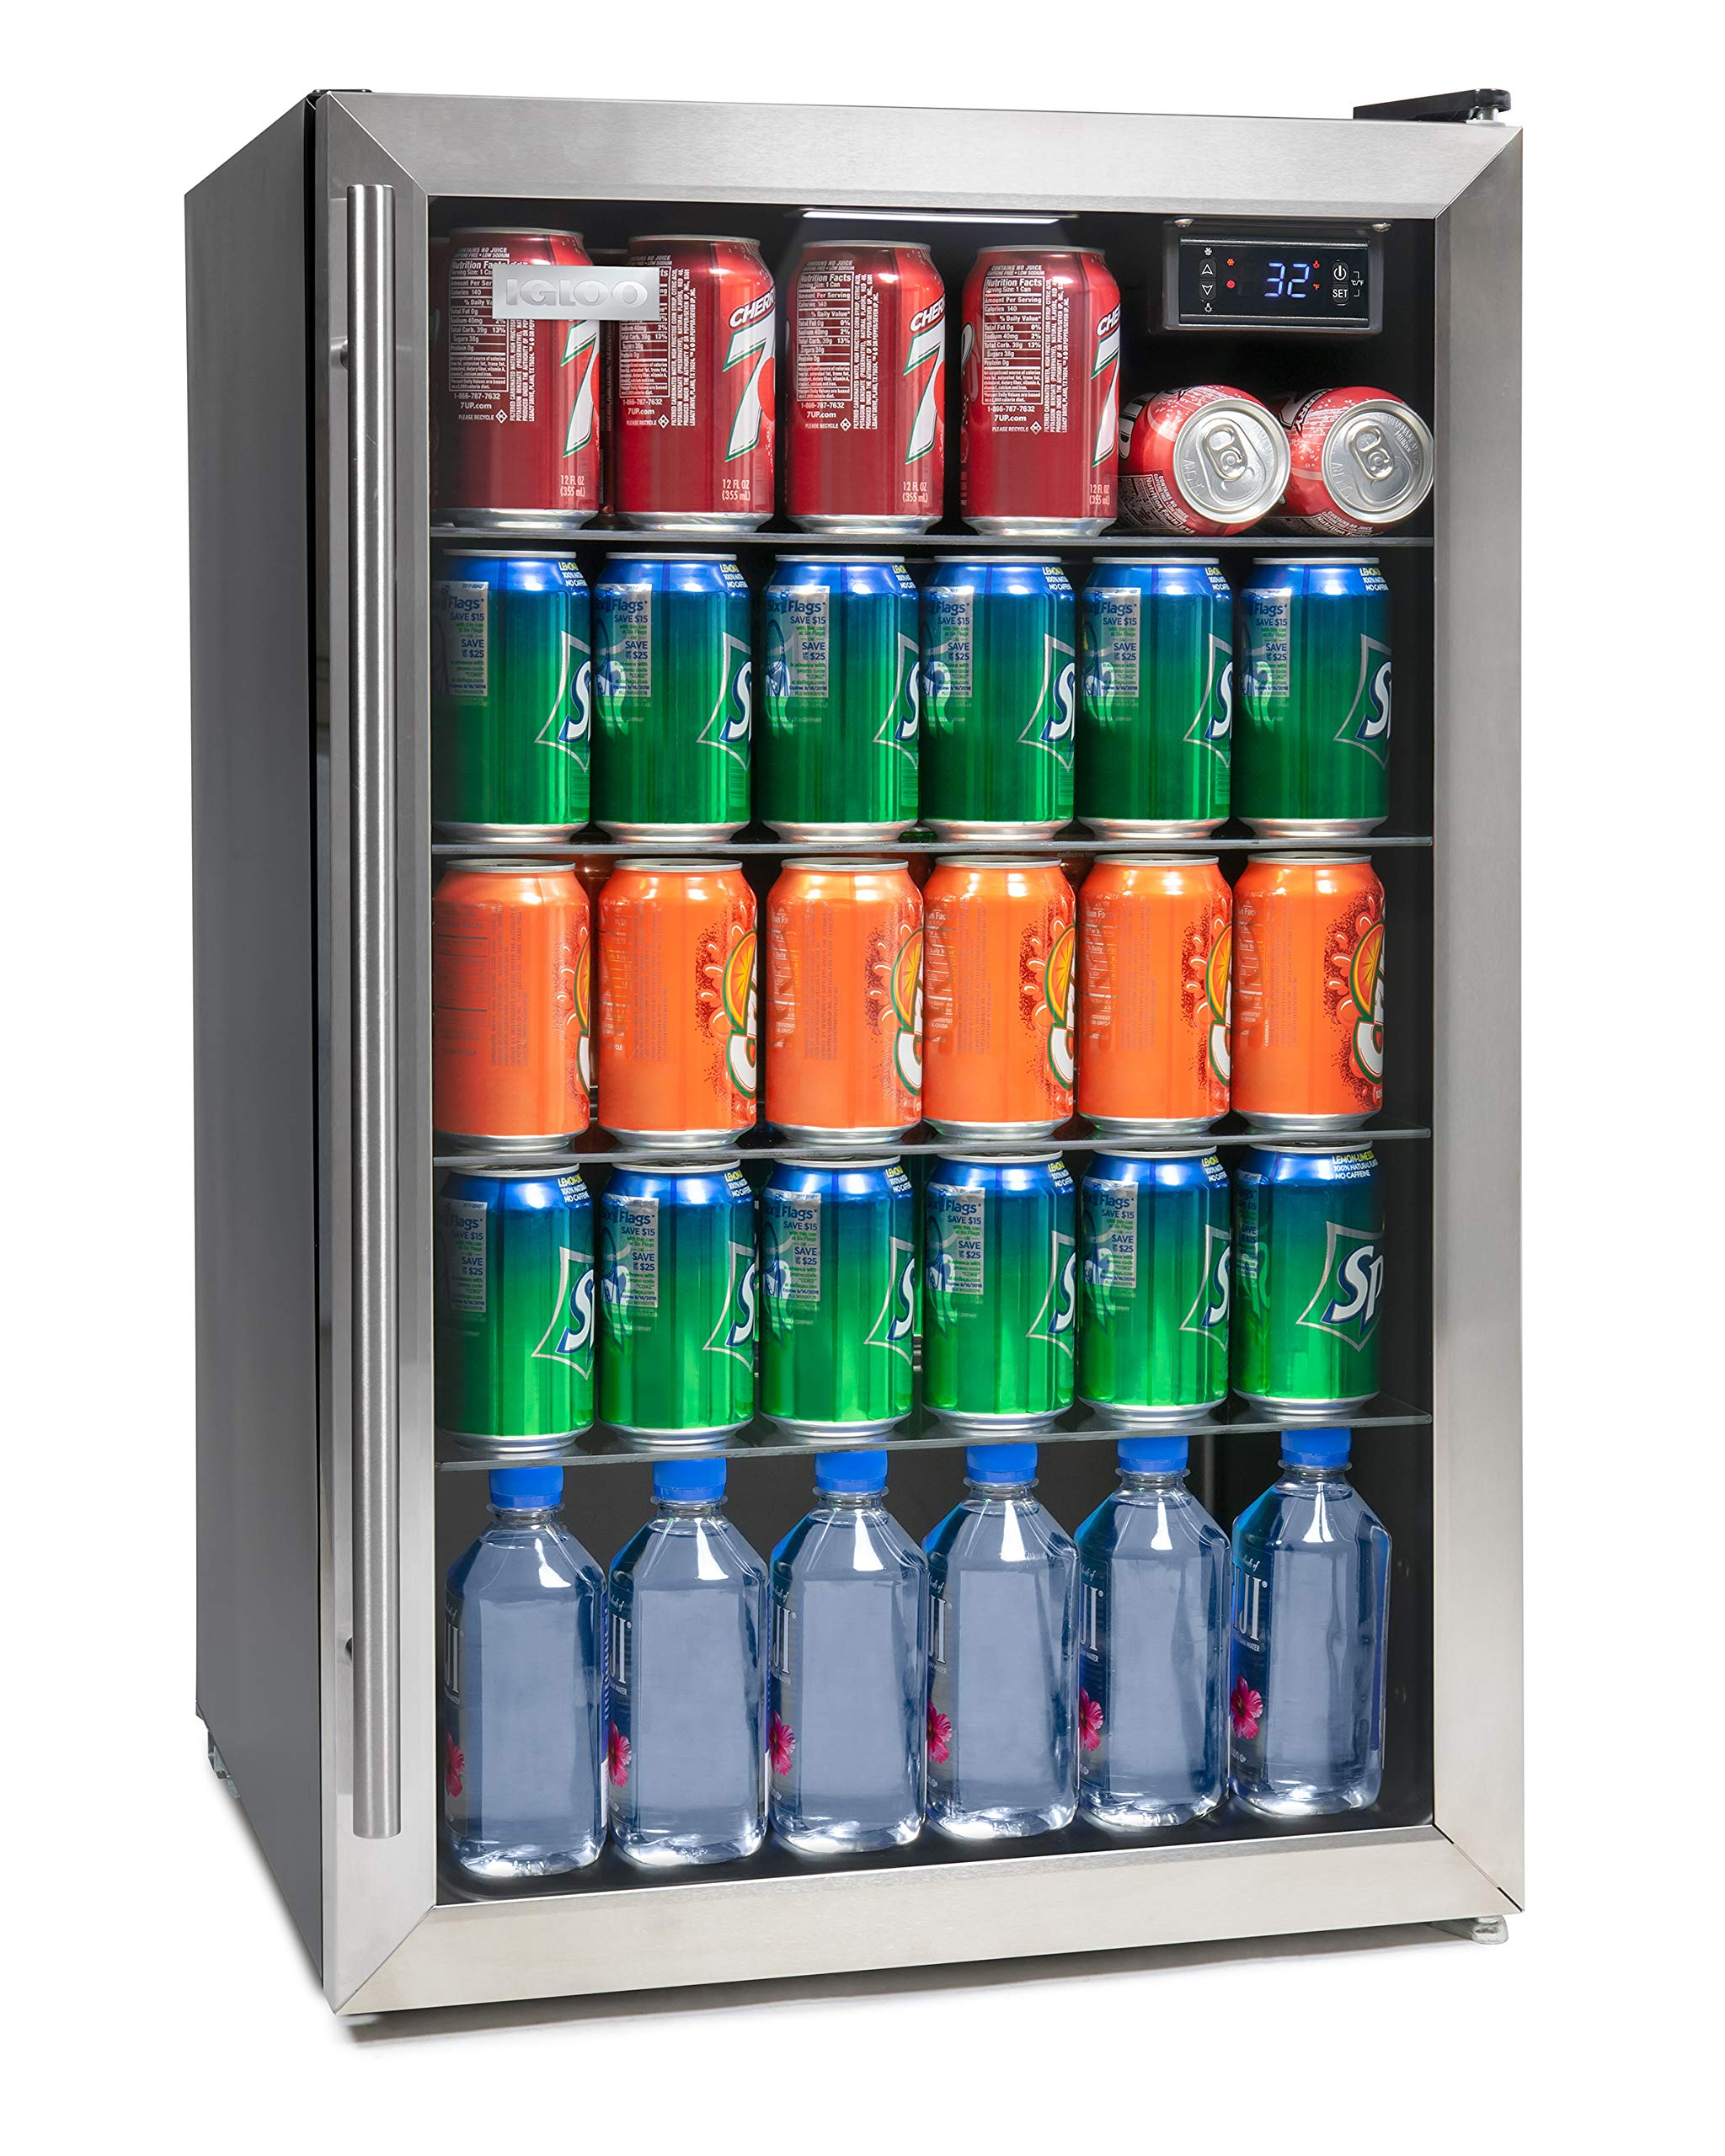 Igloo IBC41SS 180-Can Capacity Stainless Steel LED-Lighted Double-Pane Glass Door Beverage Center Refrigerator and Cooler for Soda, Beer, Wine and Water with Digital Thermostat,